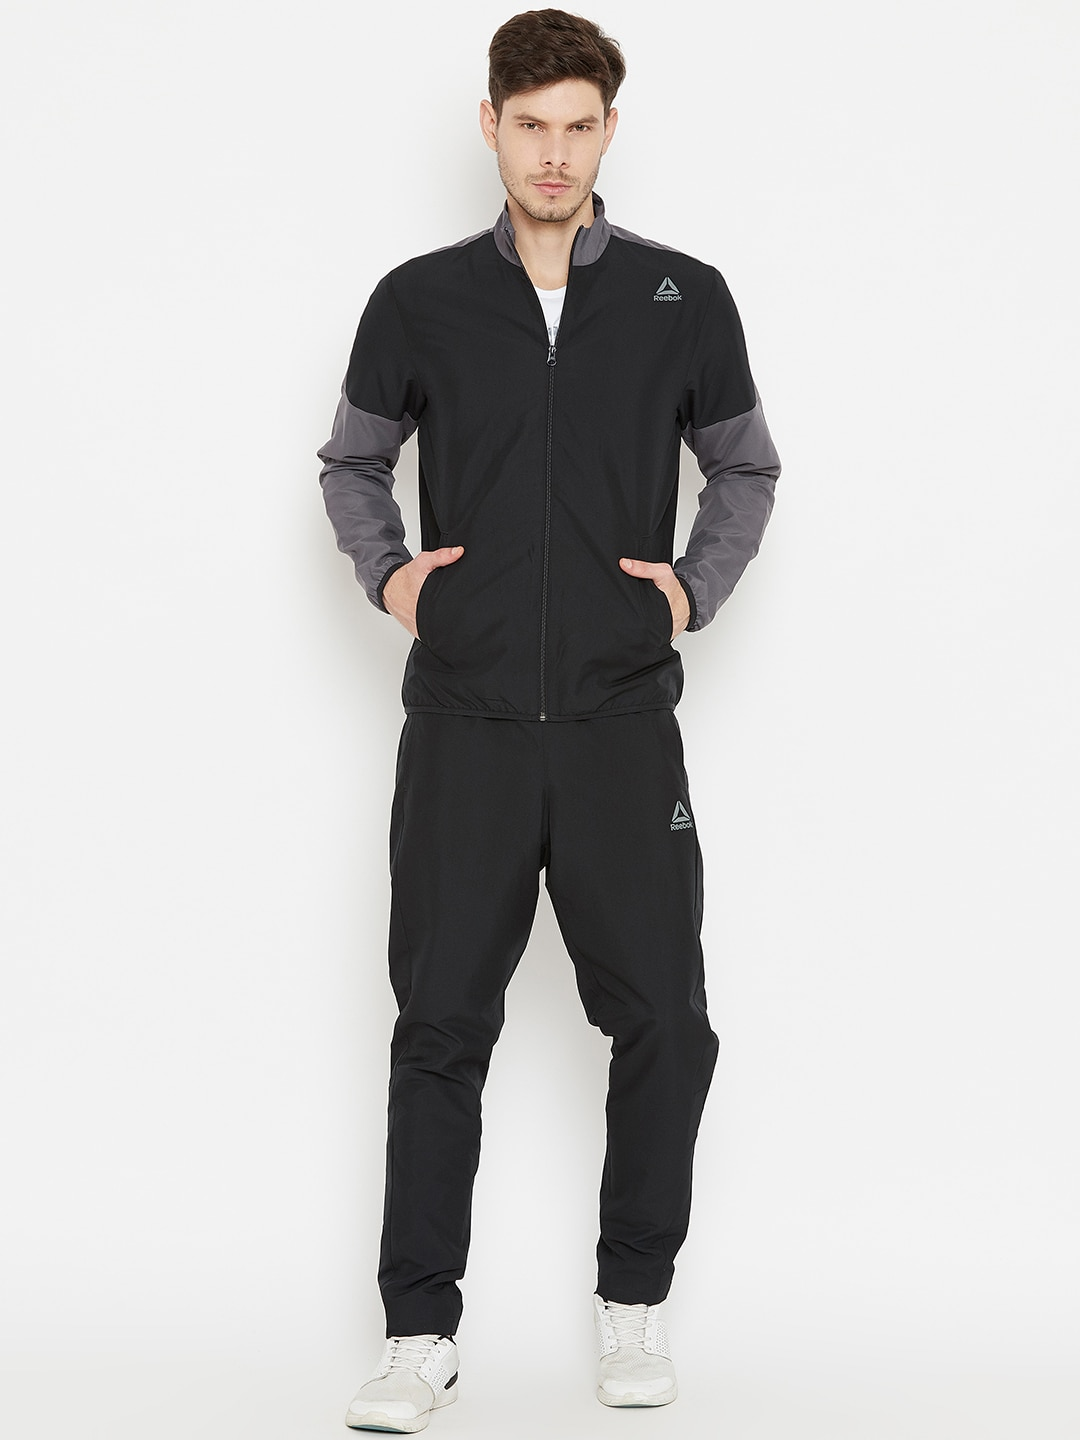 the latest cef1a 2fe50 Buy Nike Navy Blue AS M NSW TRK SUIT PK BASIC Tracksuit - Tracksuits ...